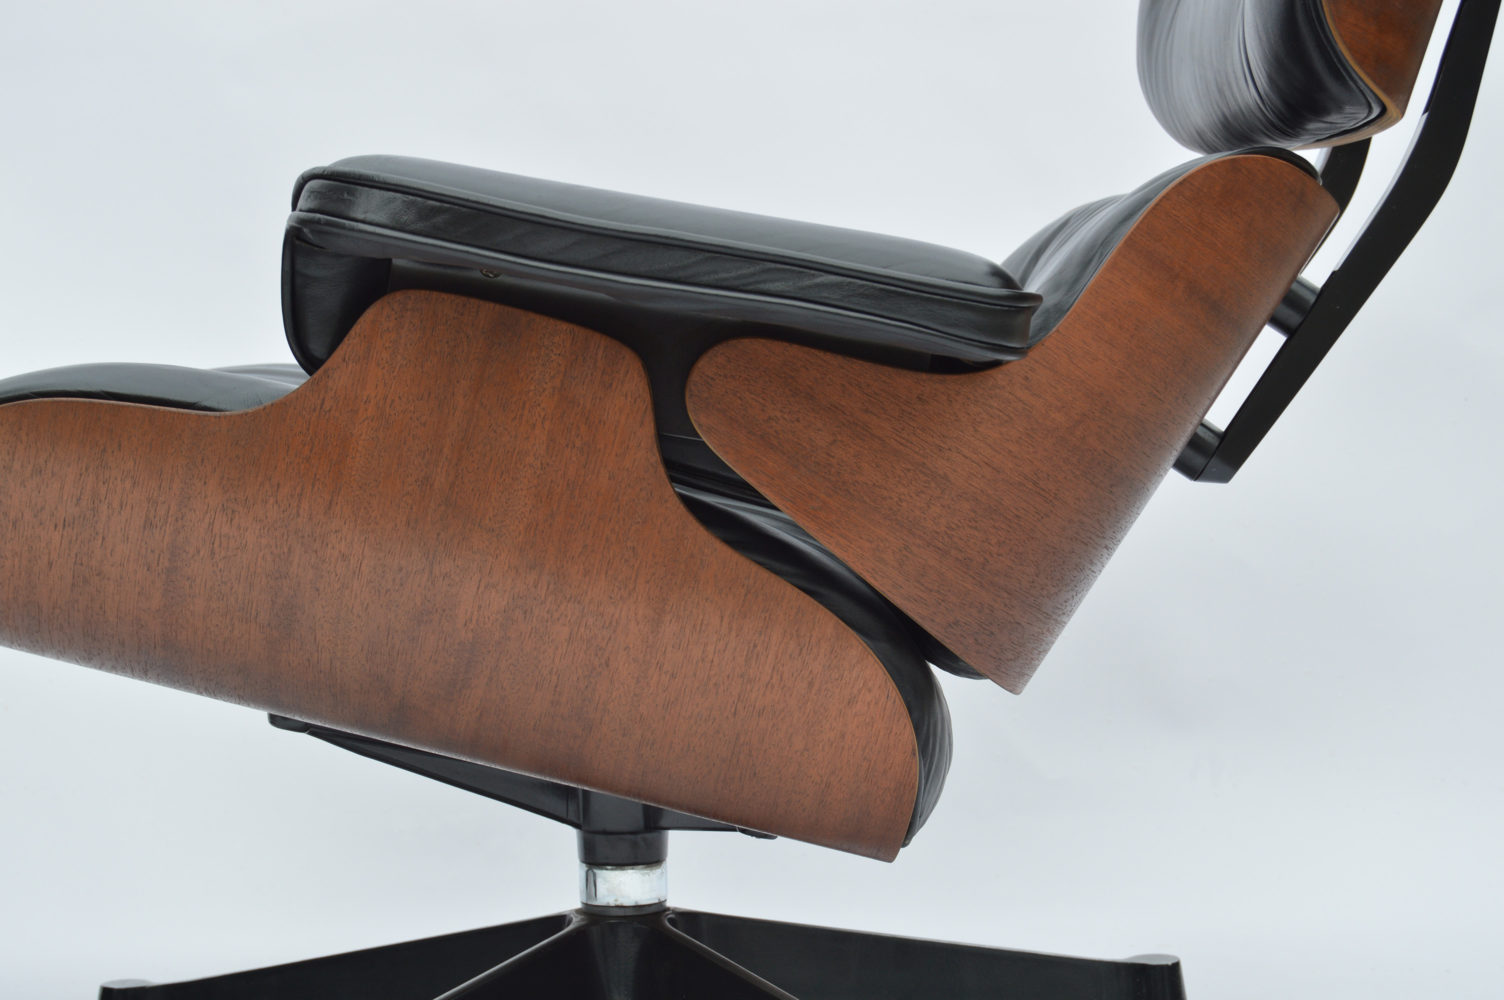 White ash eames 174 lounge chair amp ottoman hivemodern com - Eames Lounge Chair Gnstig Eames Lounge Chair By Vitra Im Design Sortiment Von Midmodern With Eames Lounge Chair Pris